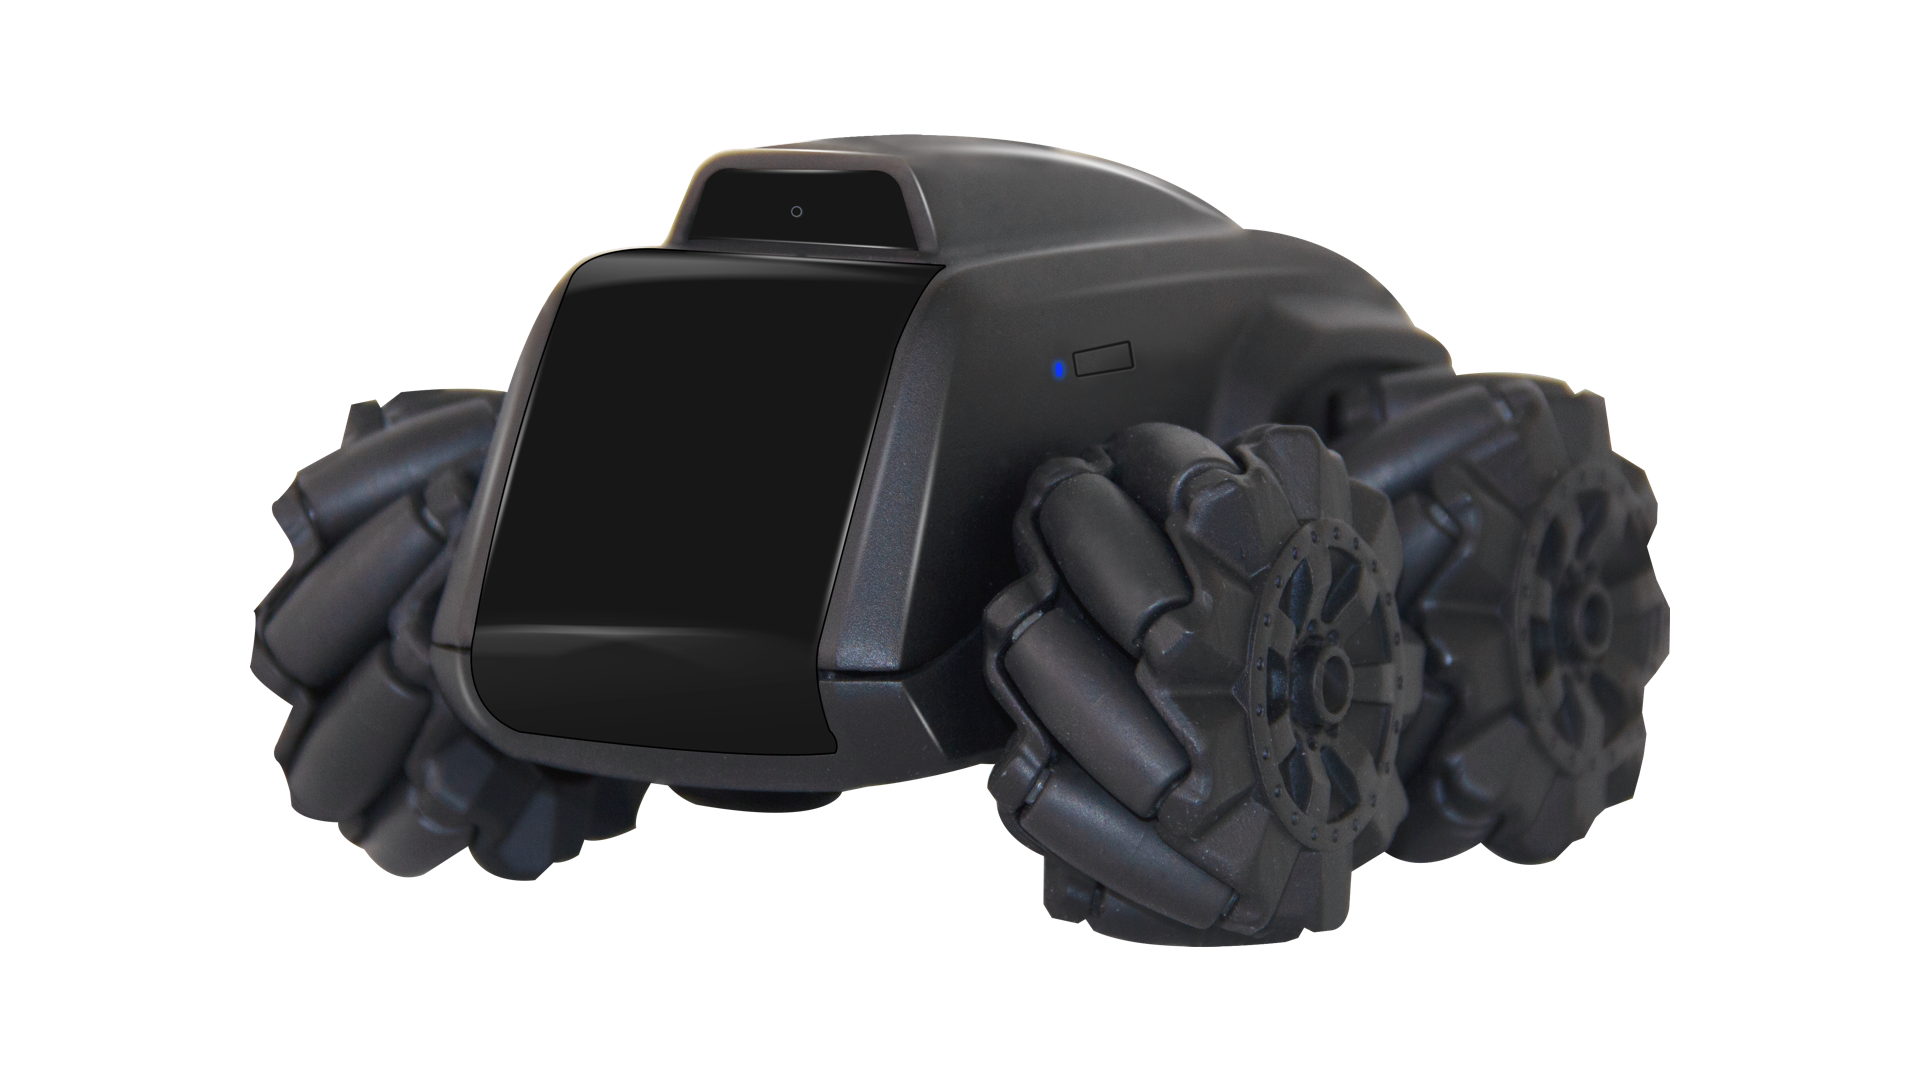 Moorebot introduced the Scout Robot